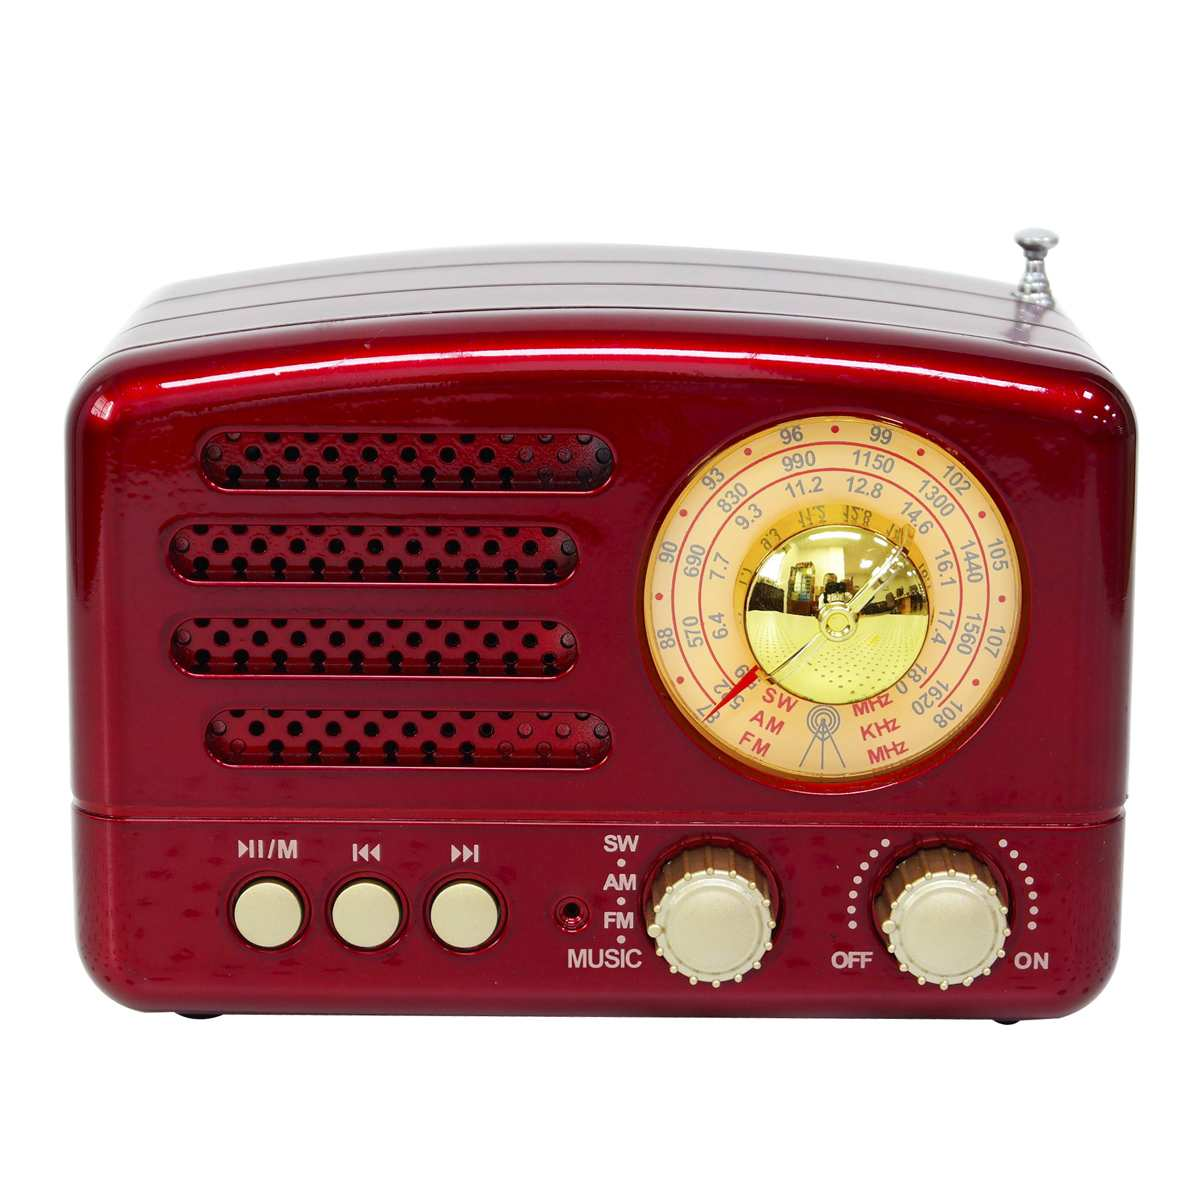 130x90x70mm rouge/café Portable rétro Radio AM FM SW bluetooth haut-parleur TF carte Slot USB charge maison voyage Mini Radio